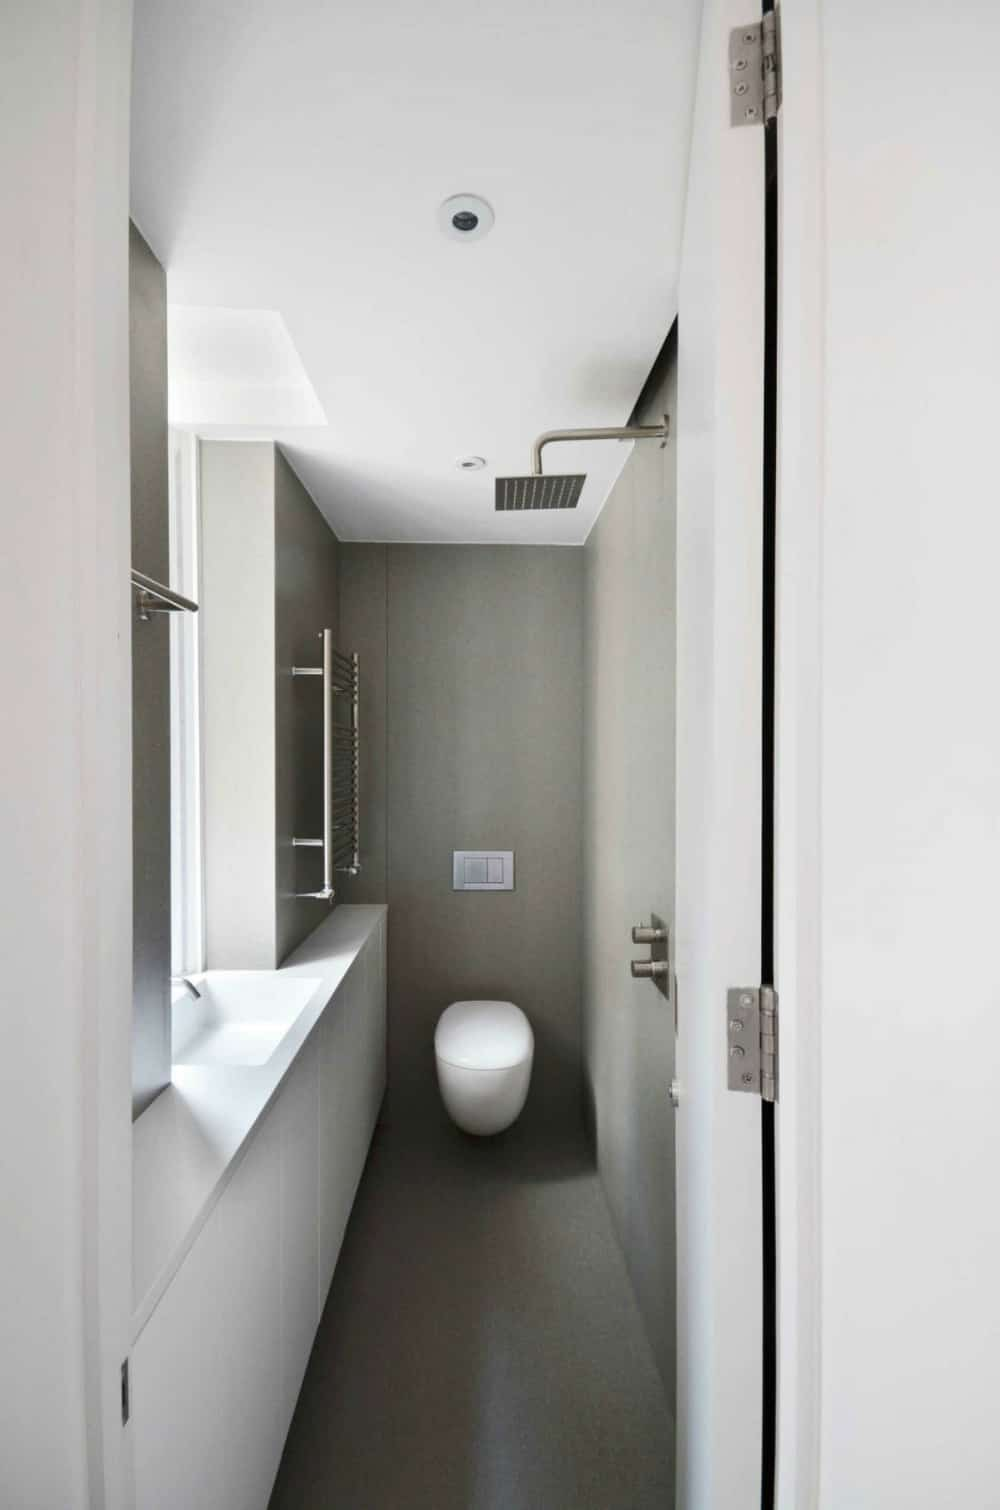 Narrow shower and toilet are simply functional